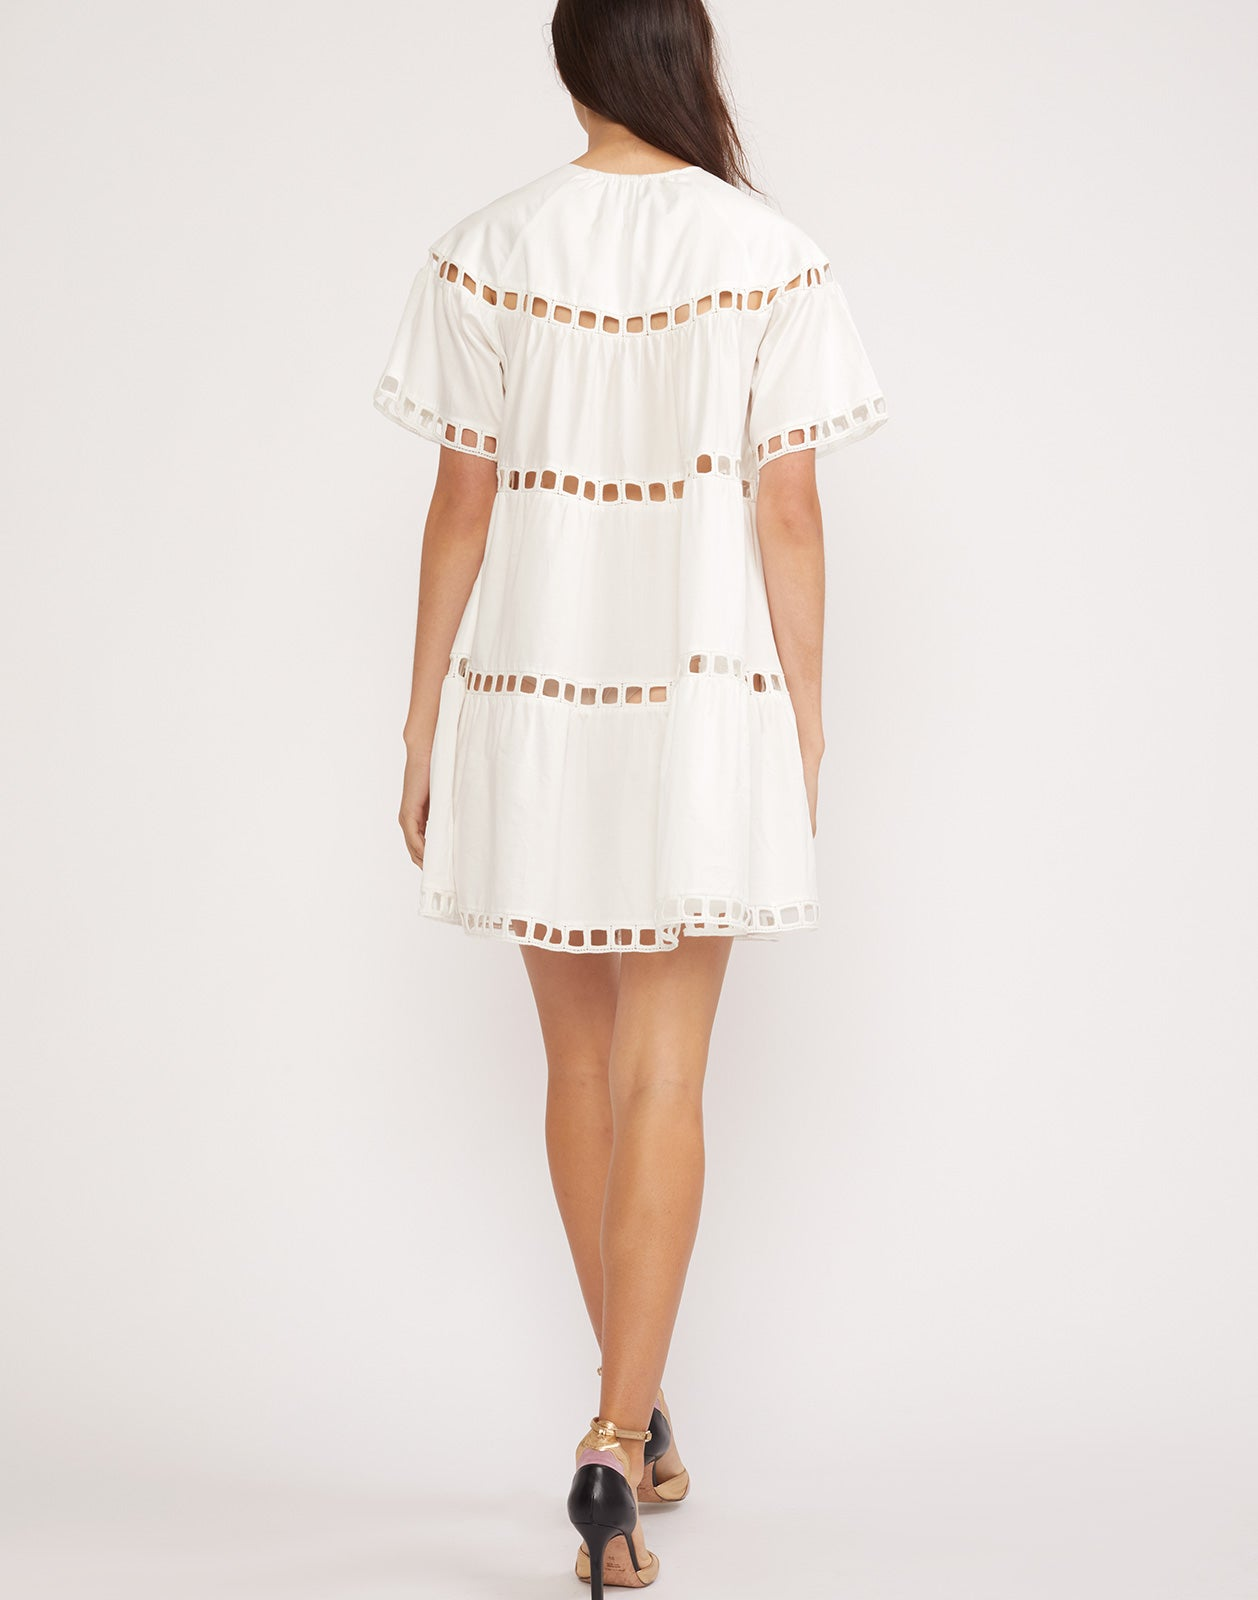 Back view of the white eyelet Postcard dress in polished cotton.